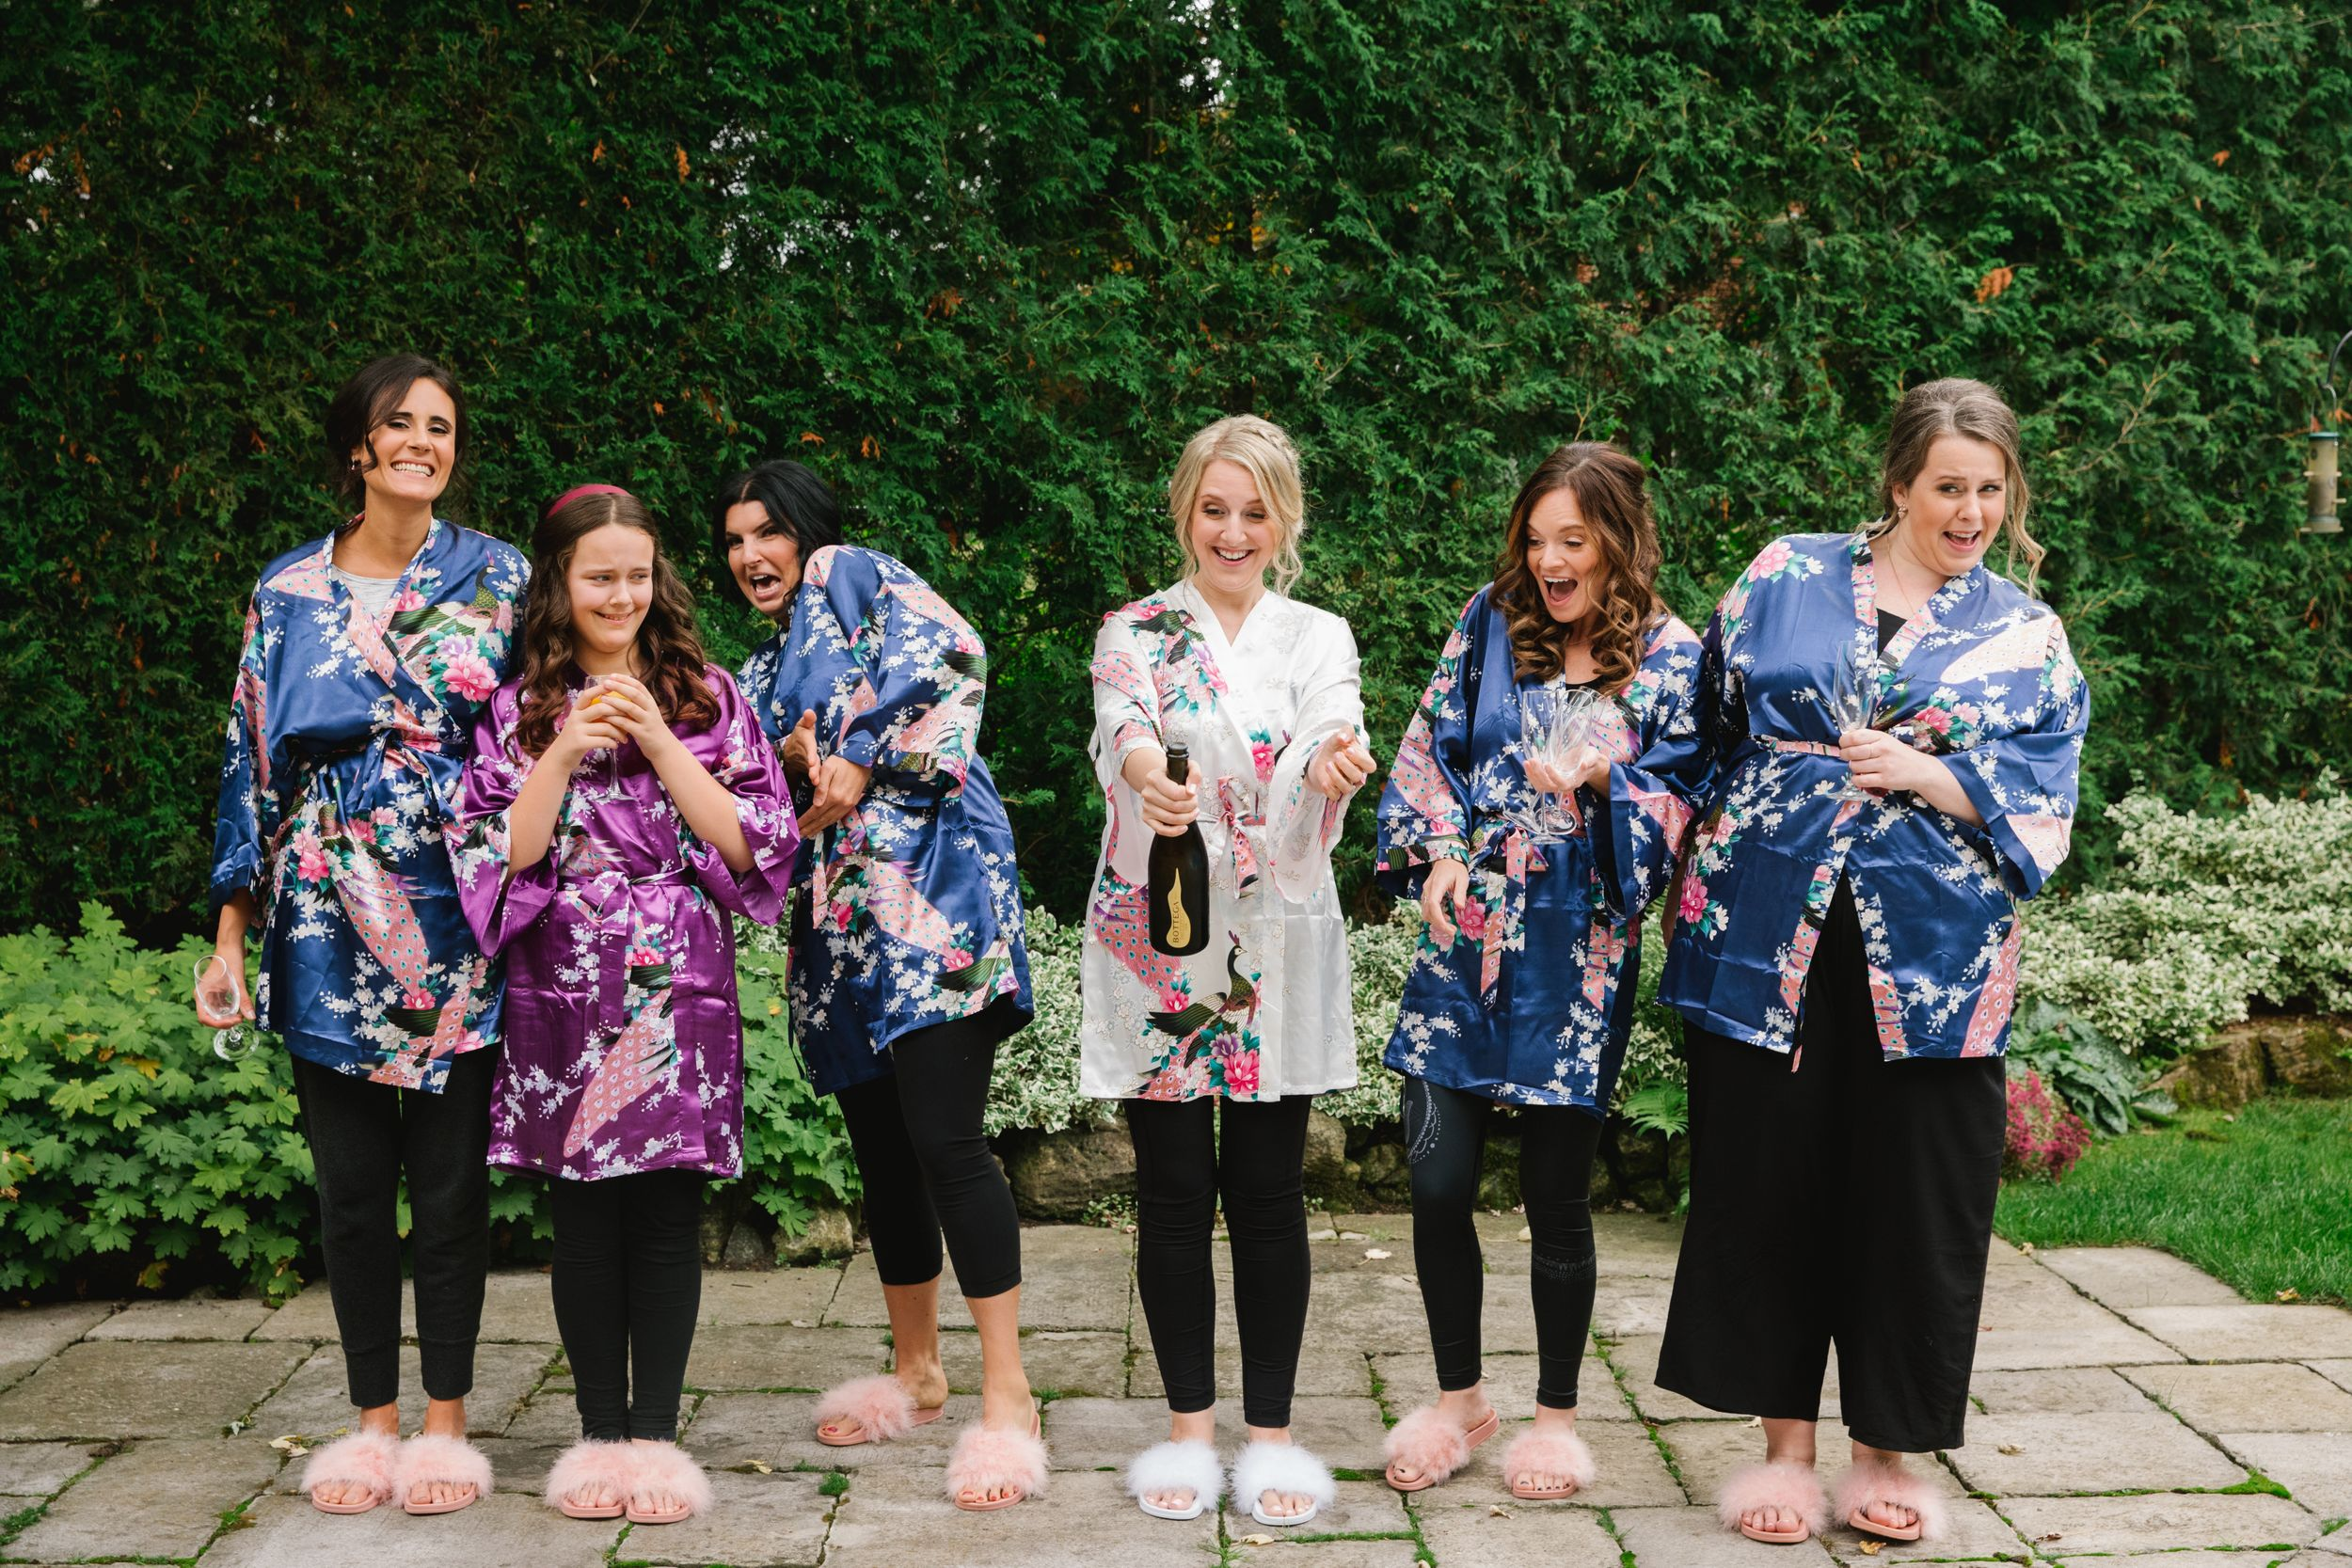 bride and bridesmaids in colourful robes popping champagne in backyard